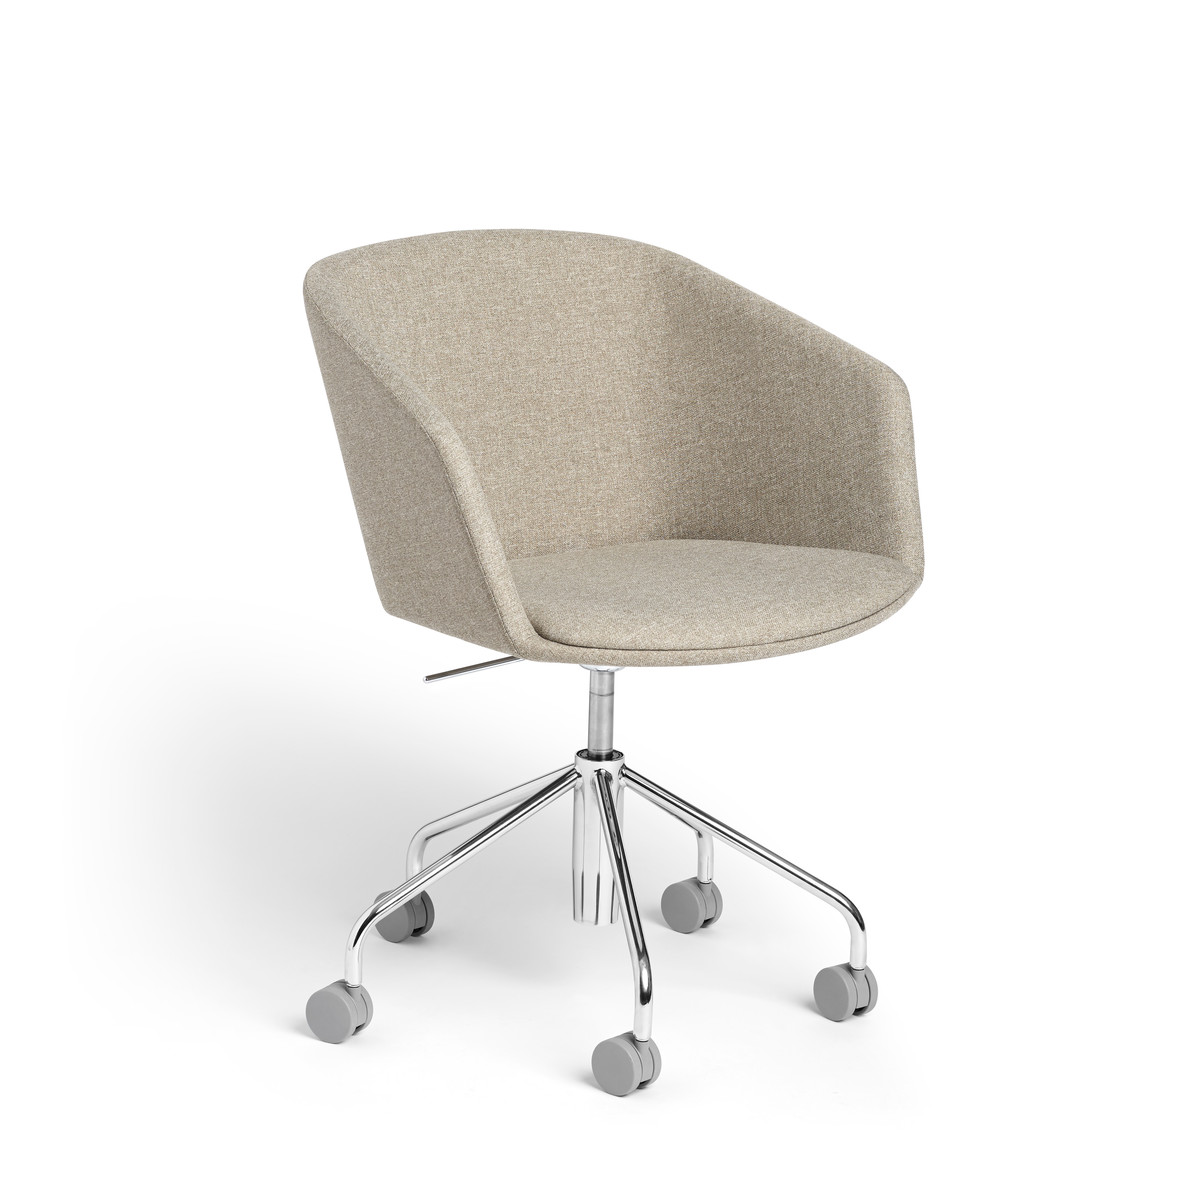 Khaki Pitch Rolling Chair  Modern Office Furniture  Poppin